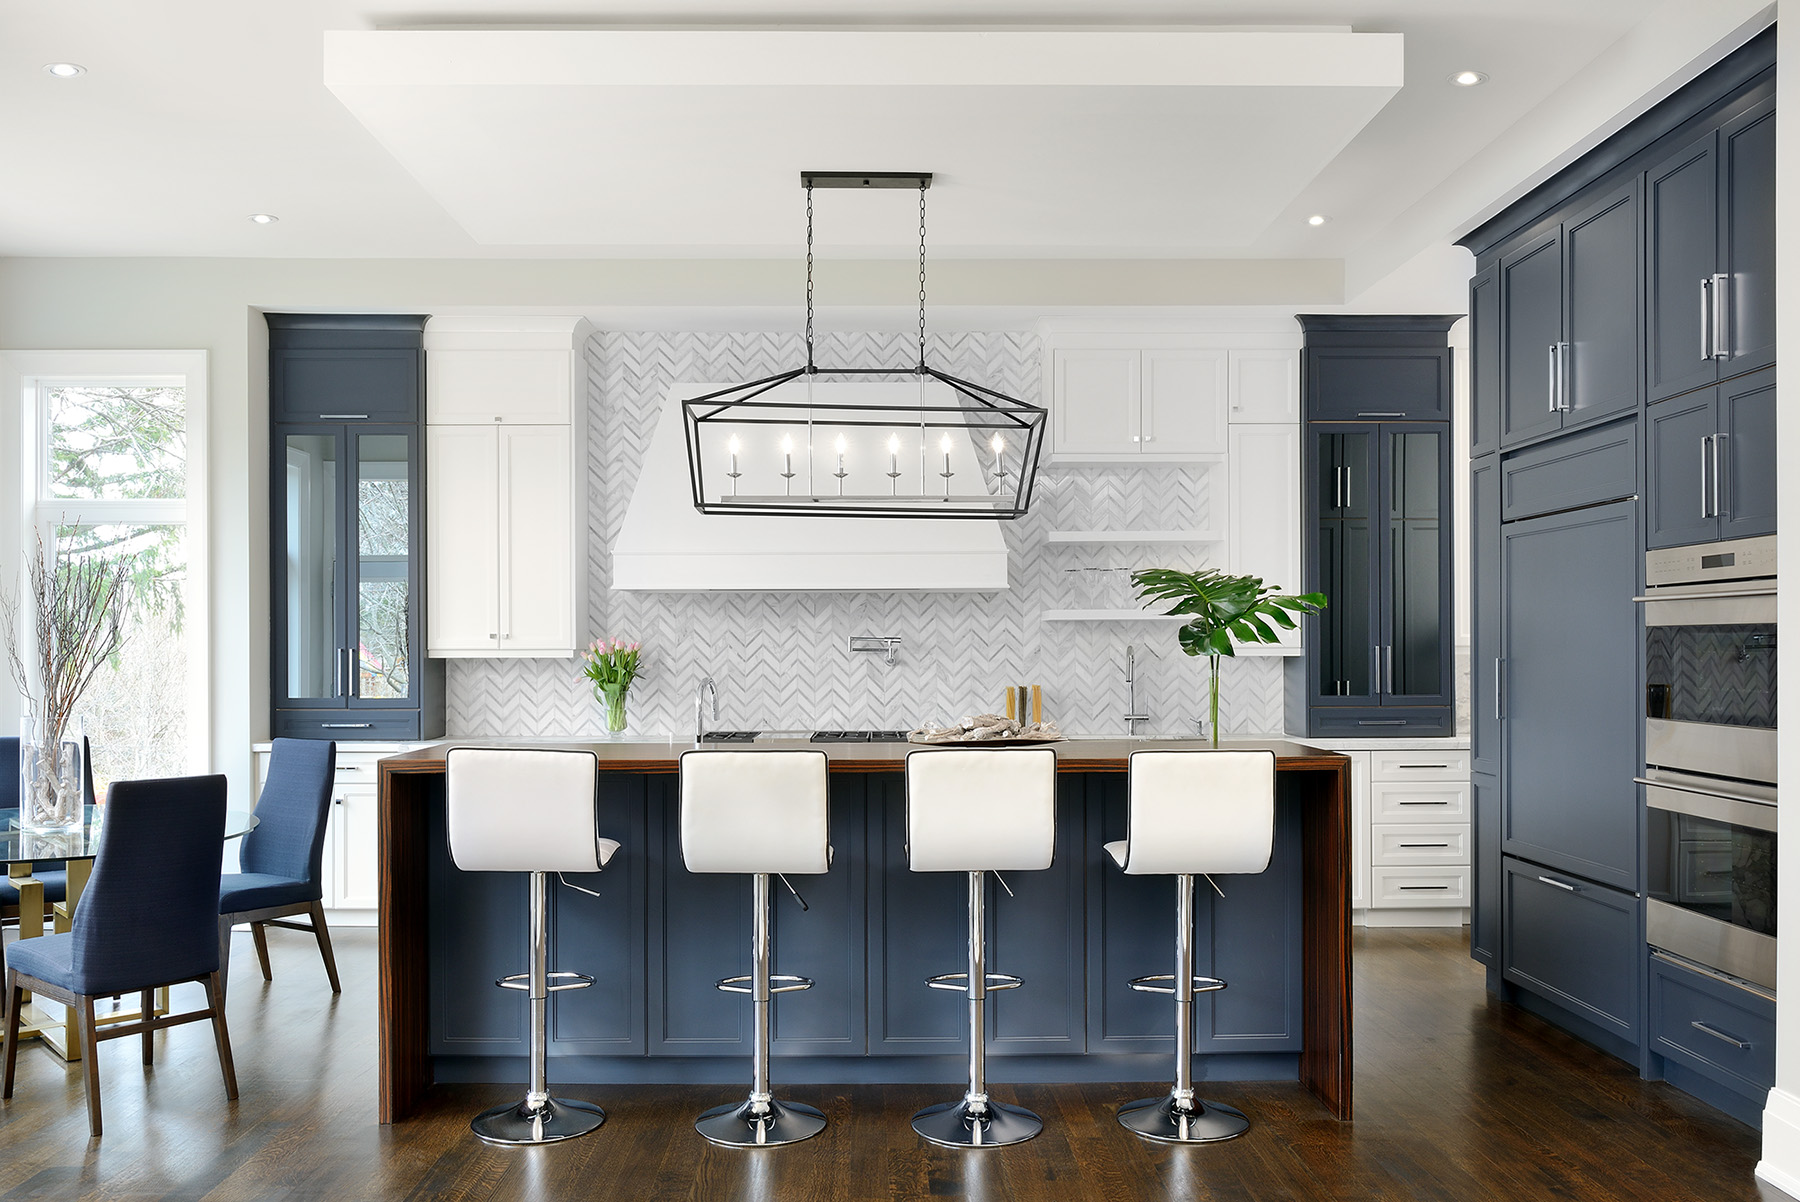 DDA award winner - Kitchen over $50 K bronze winner for 2018